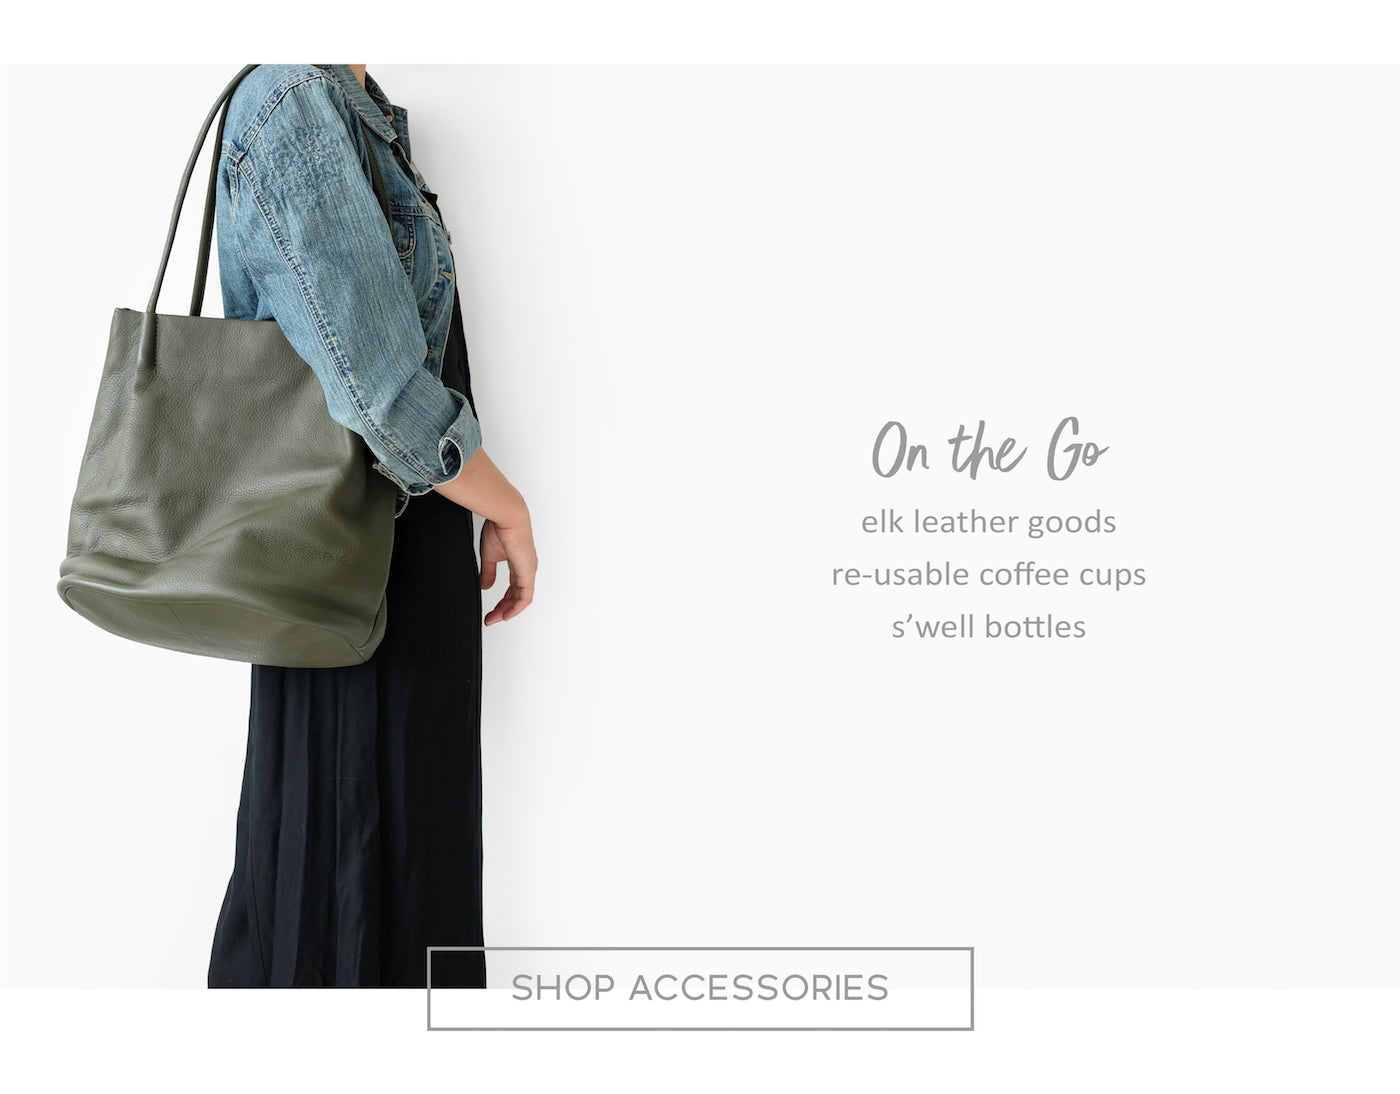 Bags + Accessories - Paper Plane Store